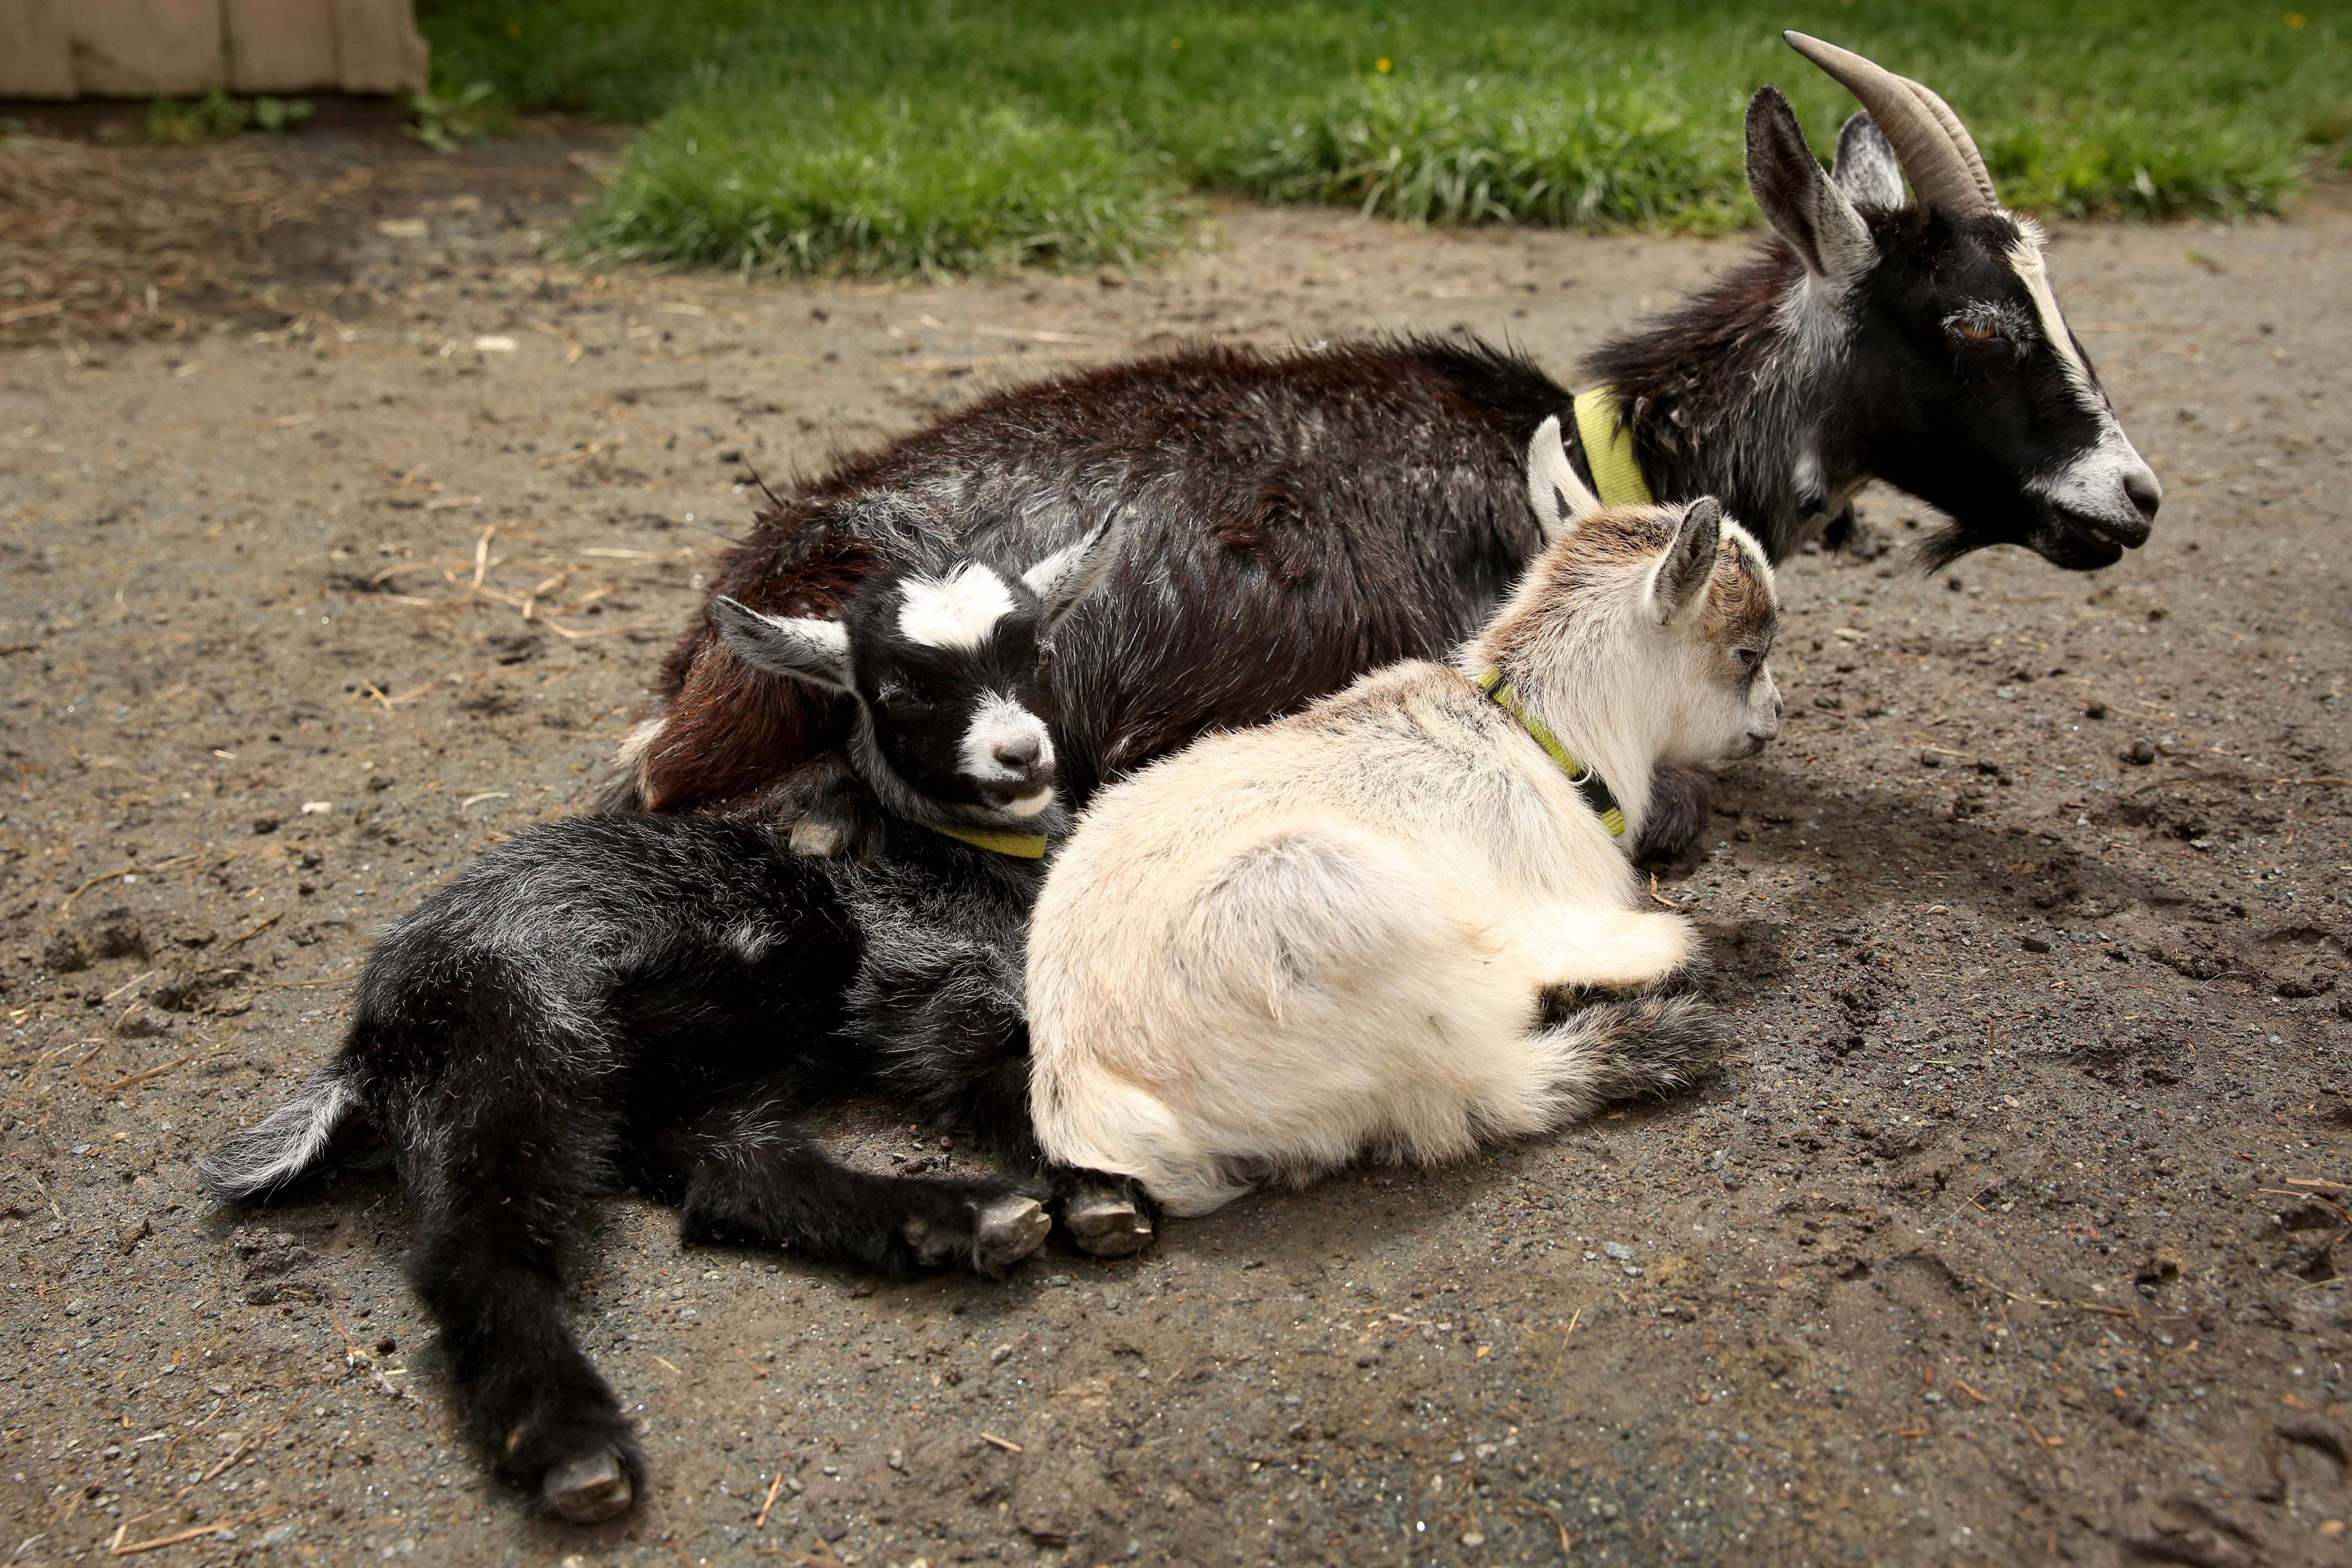 Clark's Elioak Farm in Ellicott City has  a petting zoo filled with all sorts of cute animals, but they recently debuted the newest members of their family - baby goats! They're even cuter in person - the trip is absolutely worth it. (Amanda Andrade-Rhoades/DC Refined)